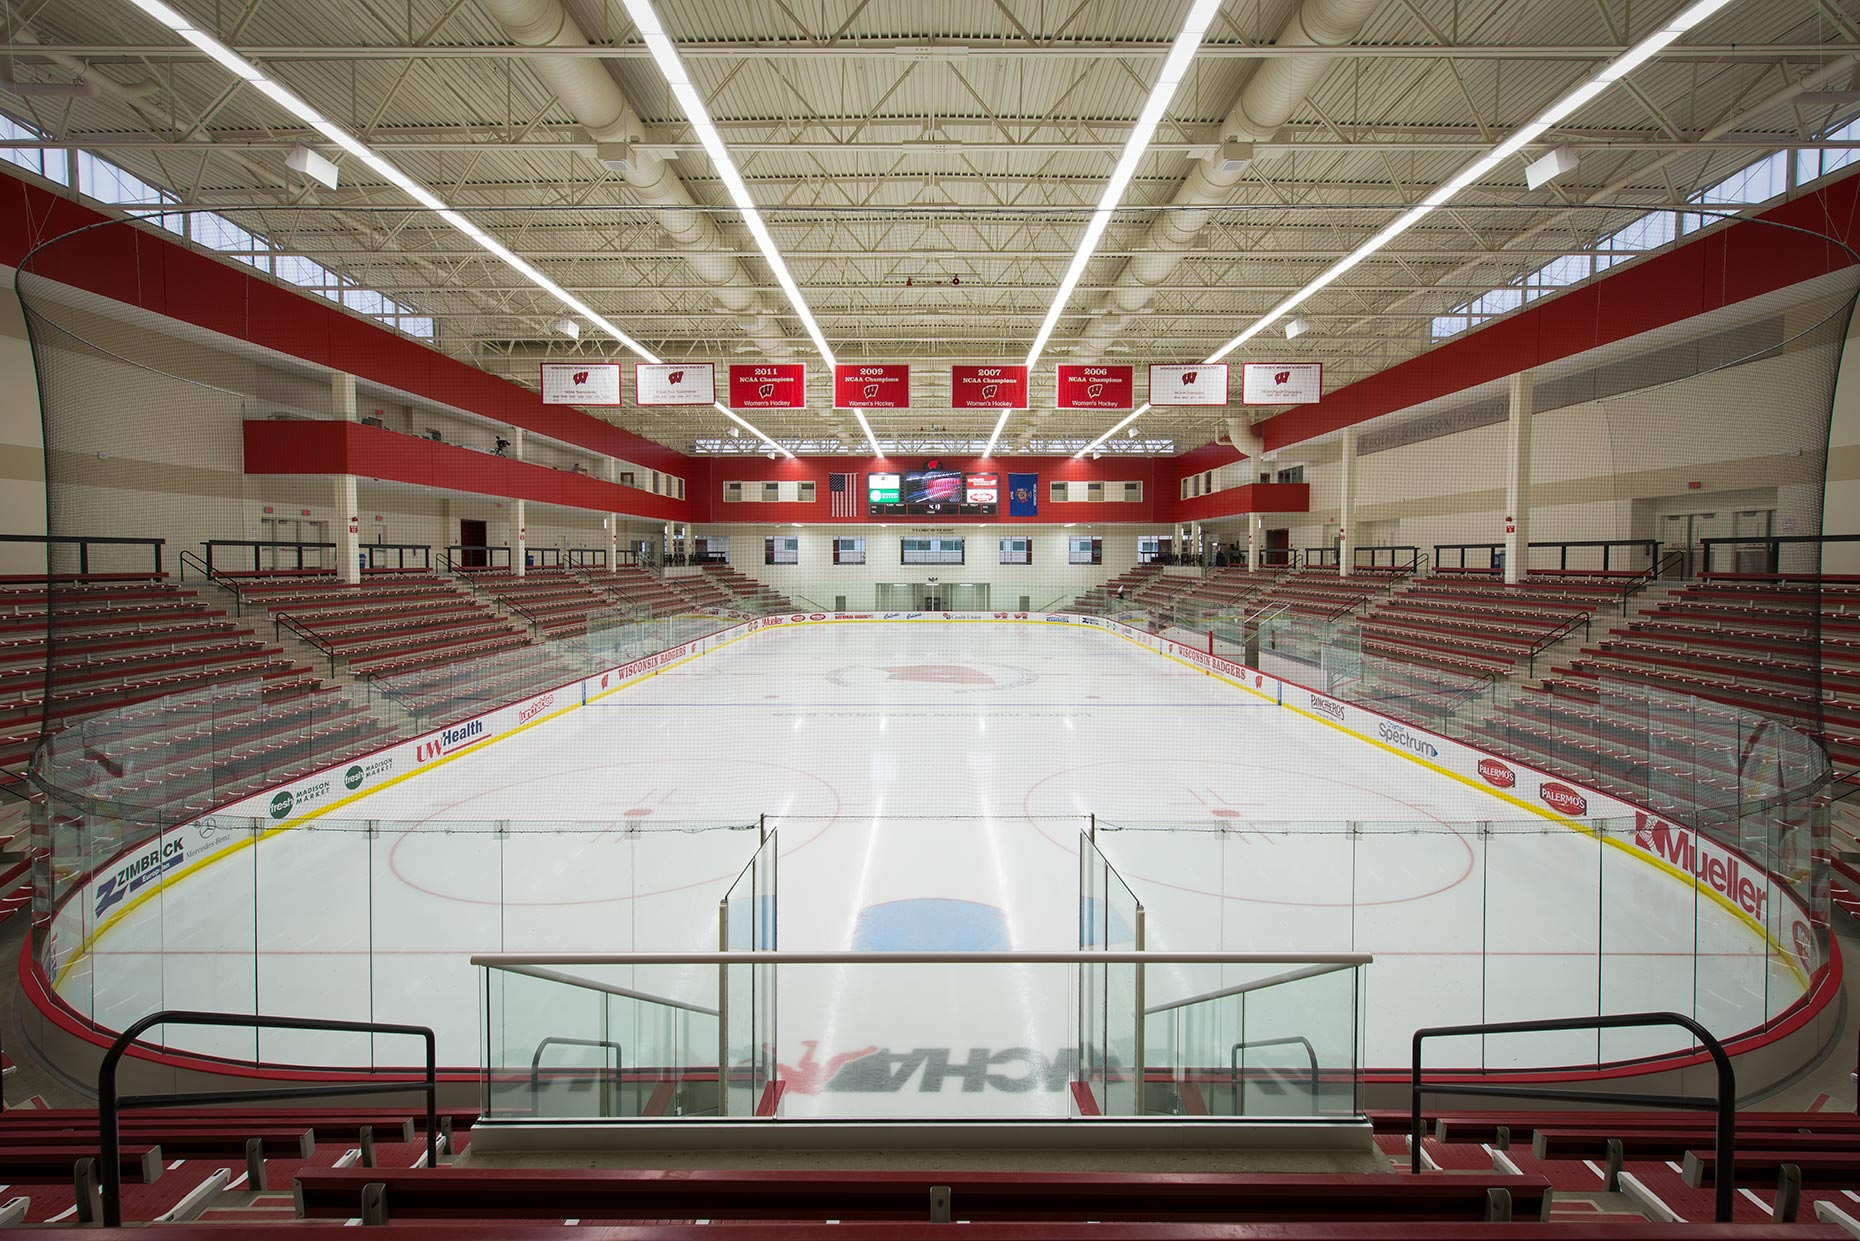 LaBahn ice hockey arena for Wisconsin Badgers at University of Wisconsin-Madison